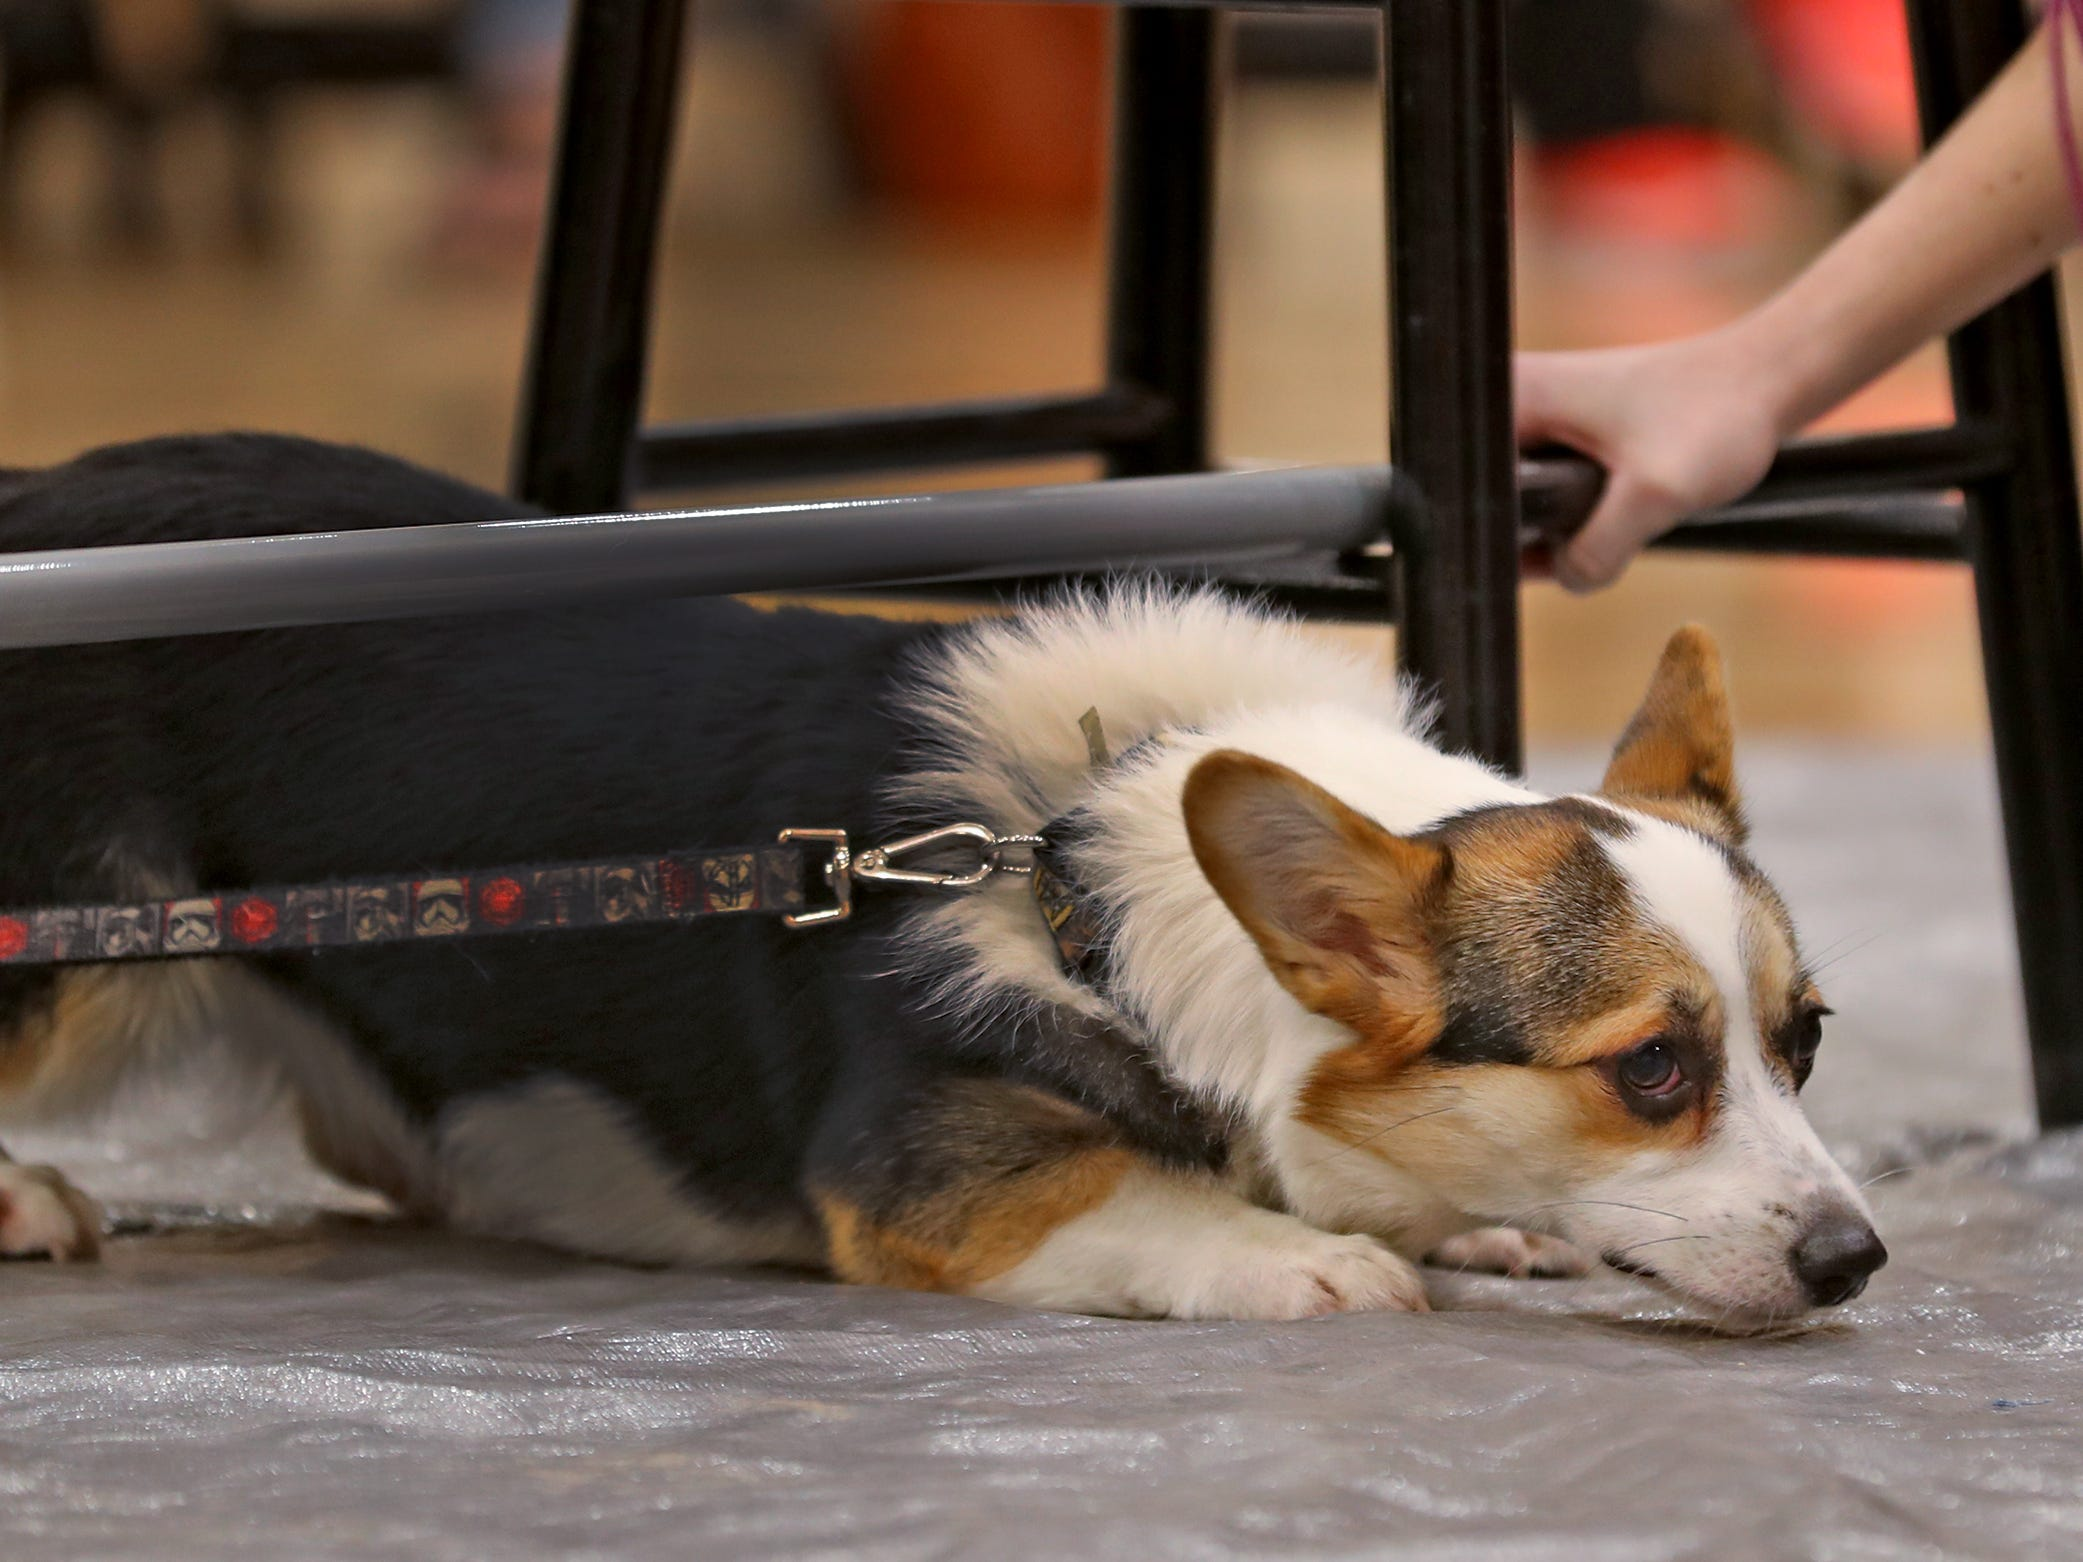 Tater Tot makes it under the limbo bar at the Indianapolis Corgi Limbo & Costume Contest at IUPUI, Sunday, April 14, 2019.  The event benefits children orphaned by HIV/AIDS in eSwatini, Africa.  It is presented by the Give Hope, Fight Poverty IUPUI chapter.